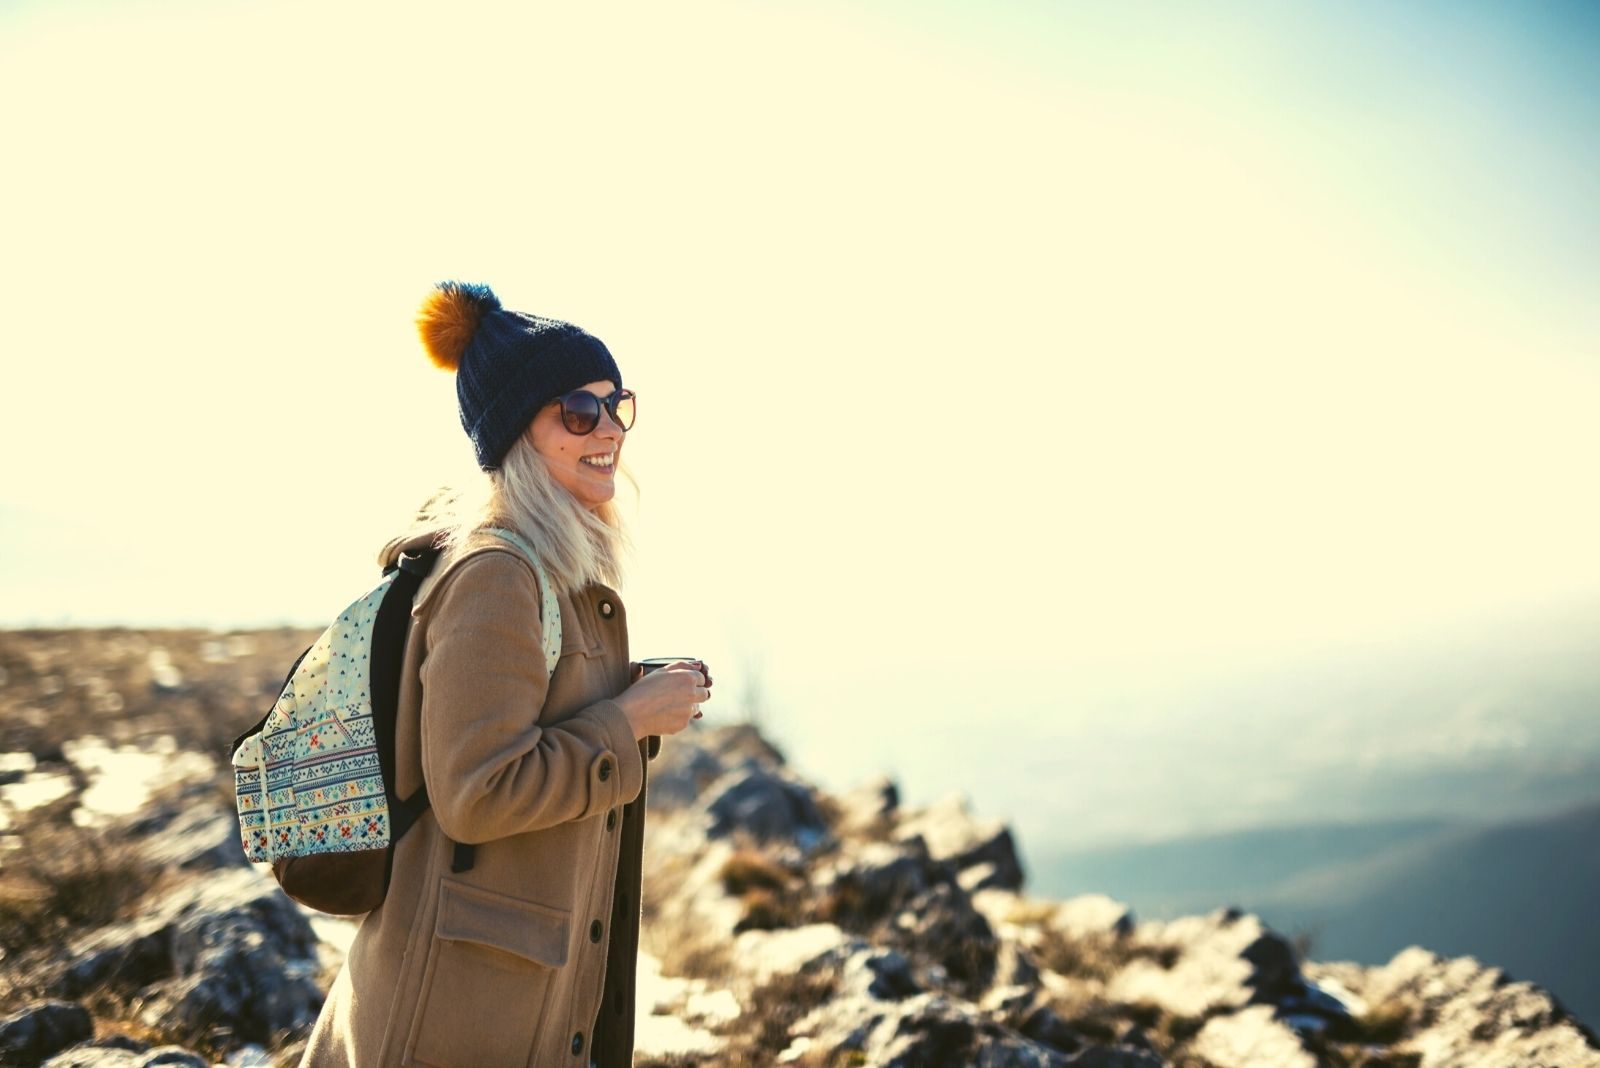 smiling woman standing at the top of the mountain wearing coat and bringing a backpack